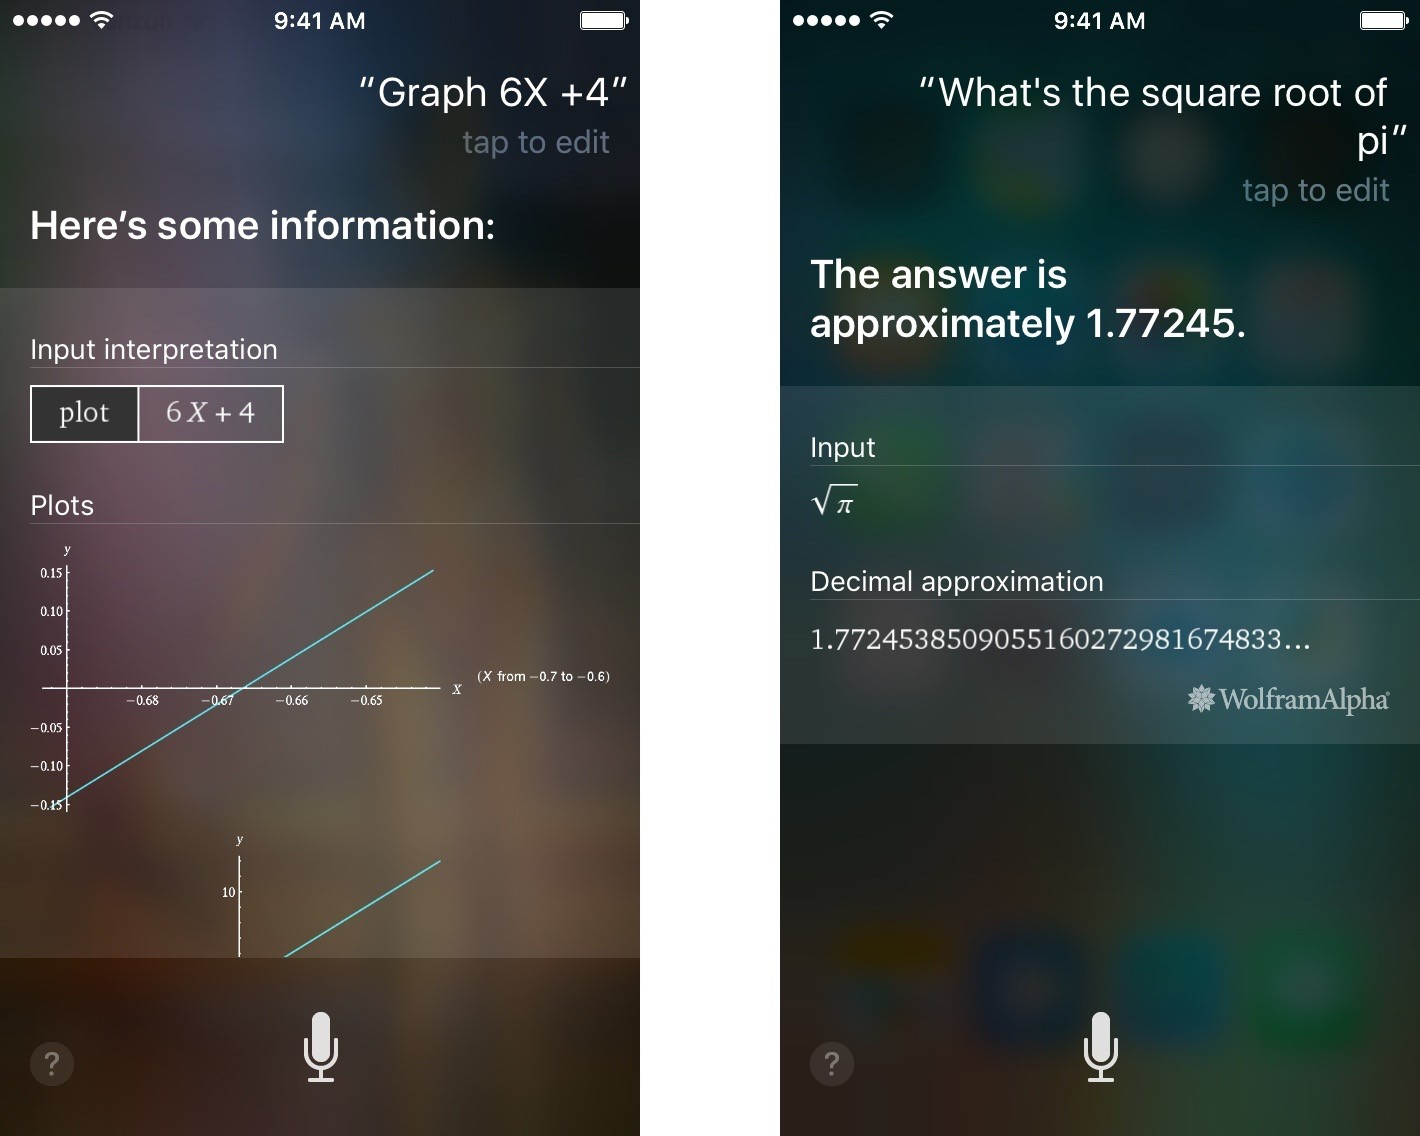 Siri can answer complex equations